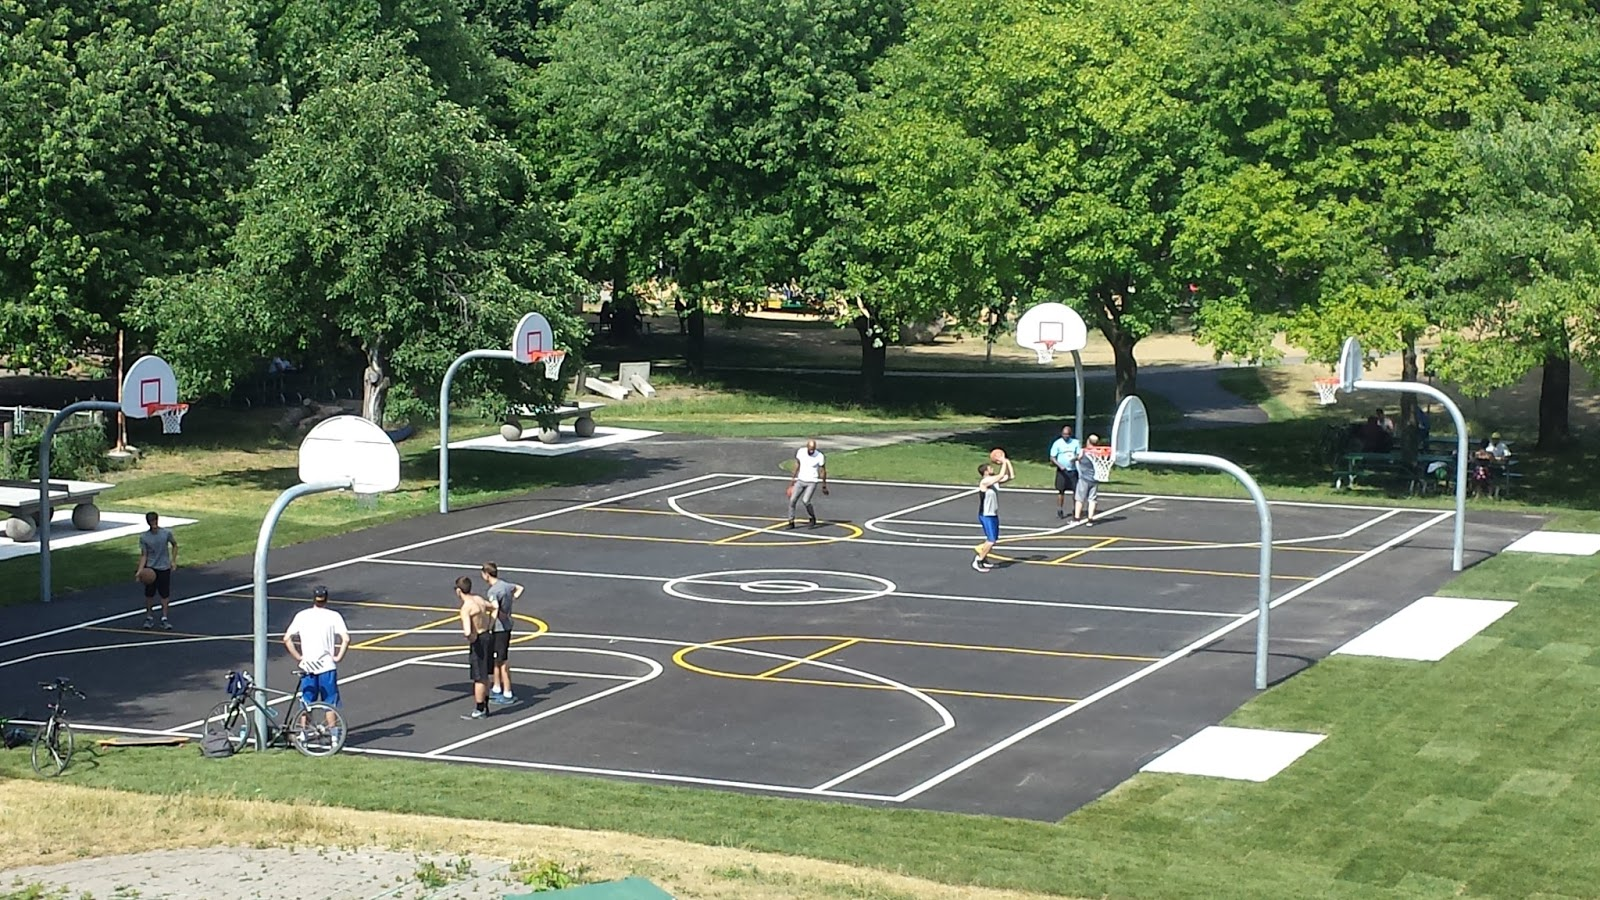 Toronto things: Best outdoor basketball courts in Toronto